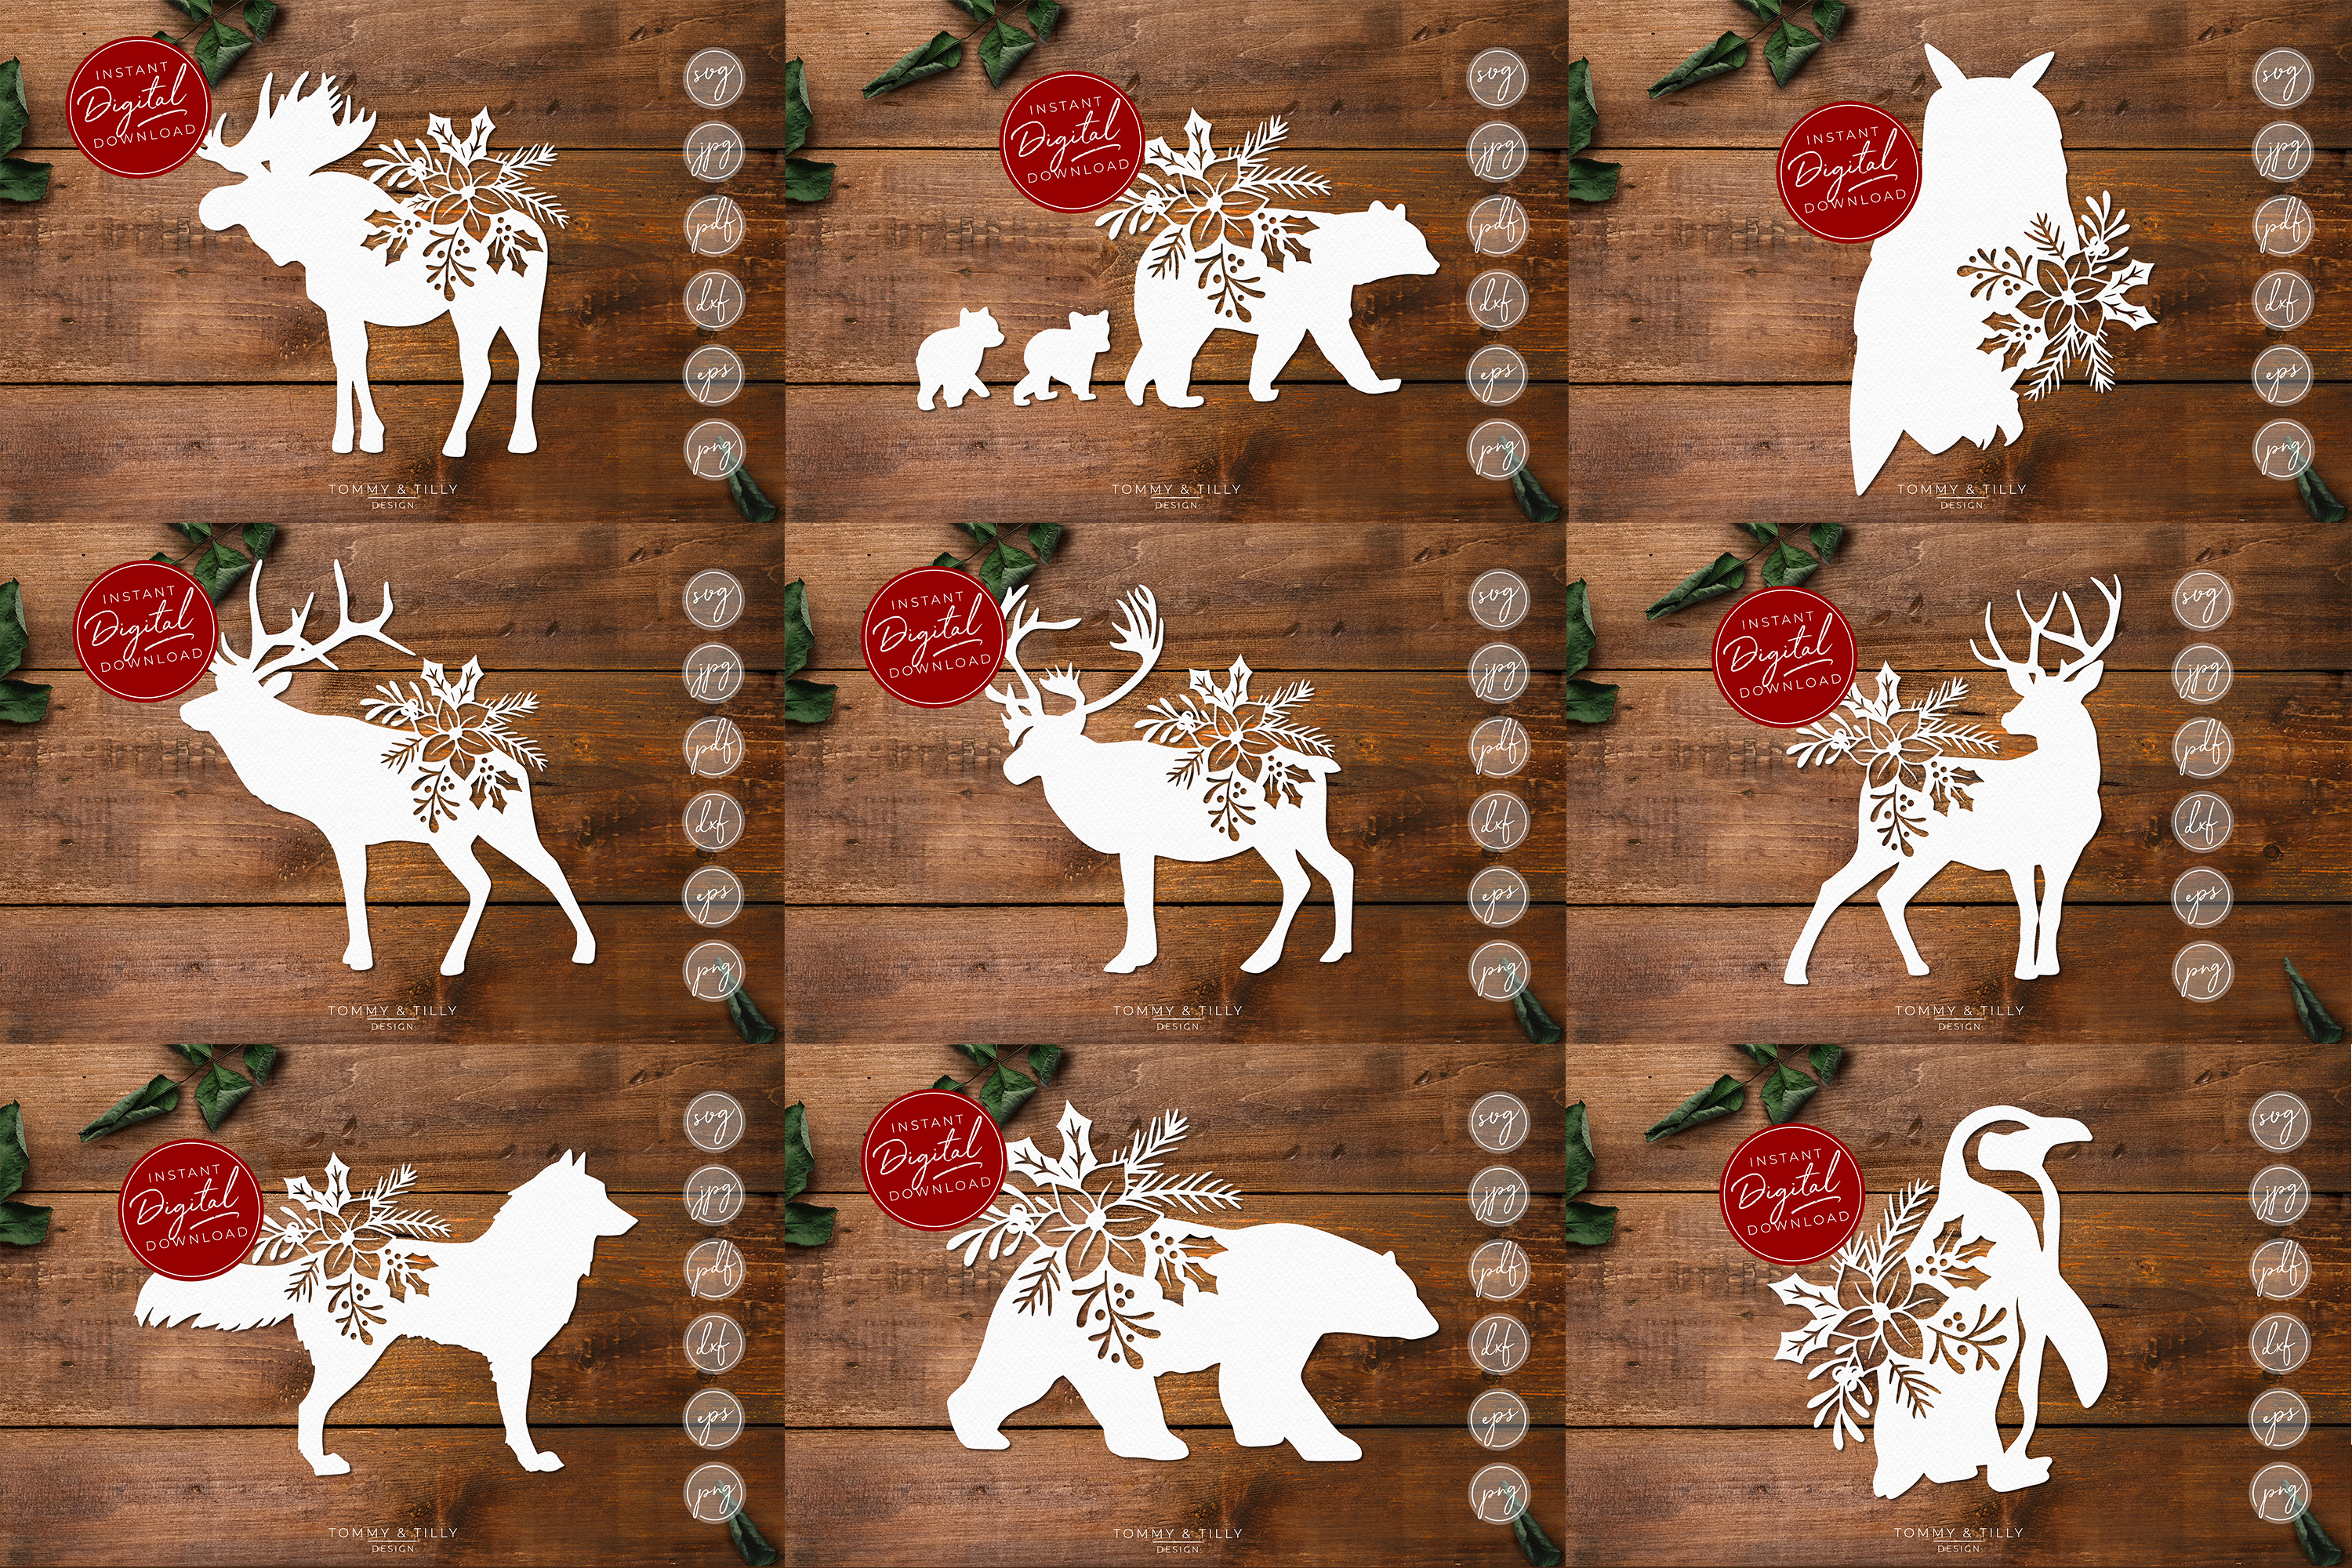 MEGA BUNDLE! 60 Christmas Cut Files - SVG | Papercut example image 2